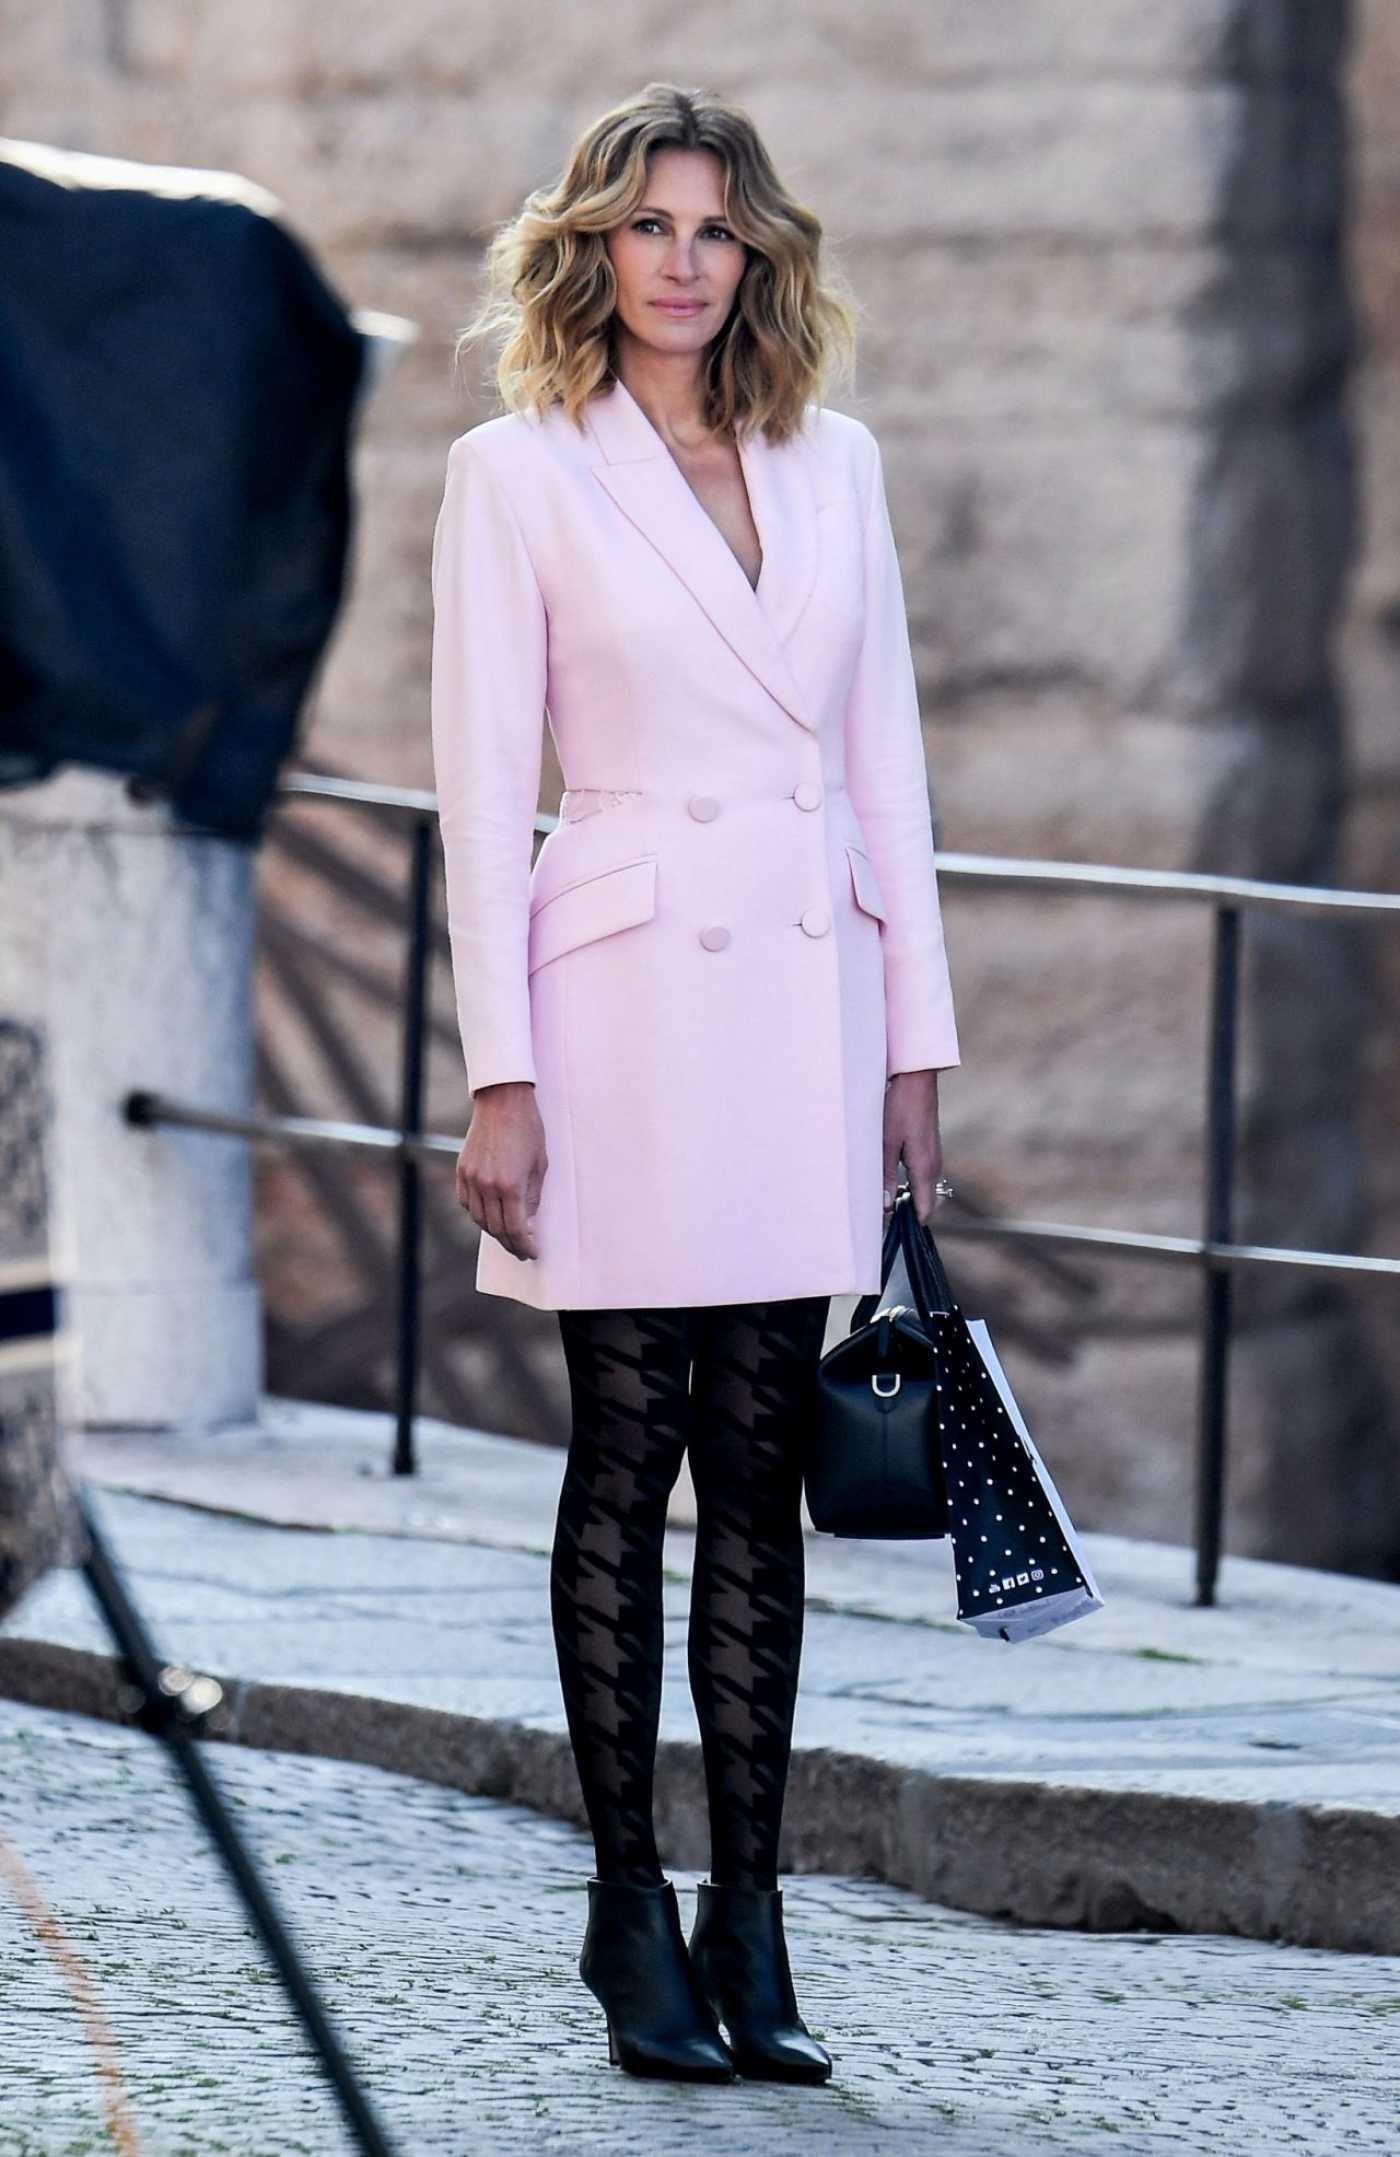 Julia Roberts in a Pink Coat on the Set of the New Advertising Campaign for Calzedonia in Verona 05/30/2019